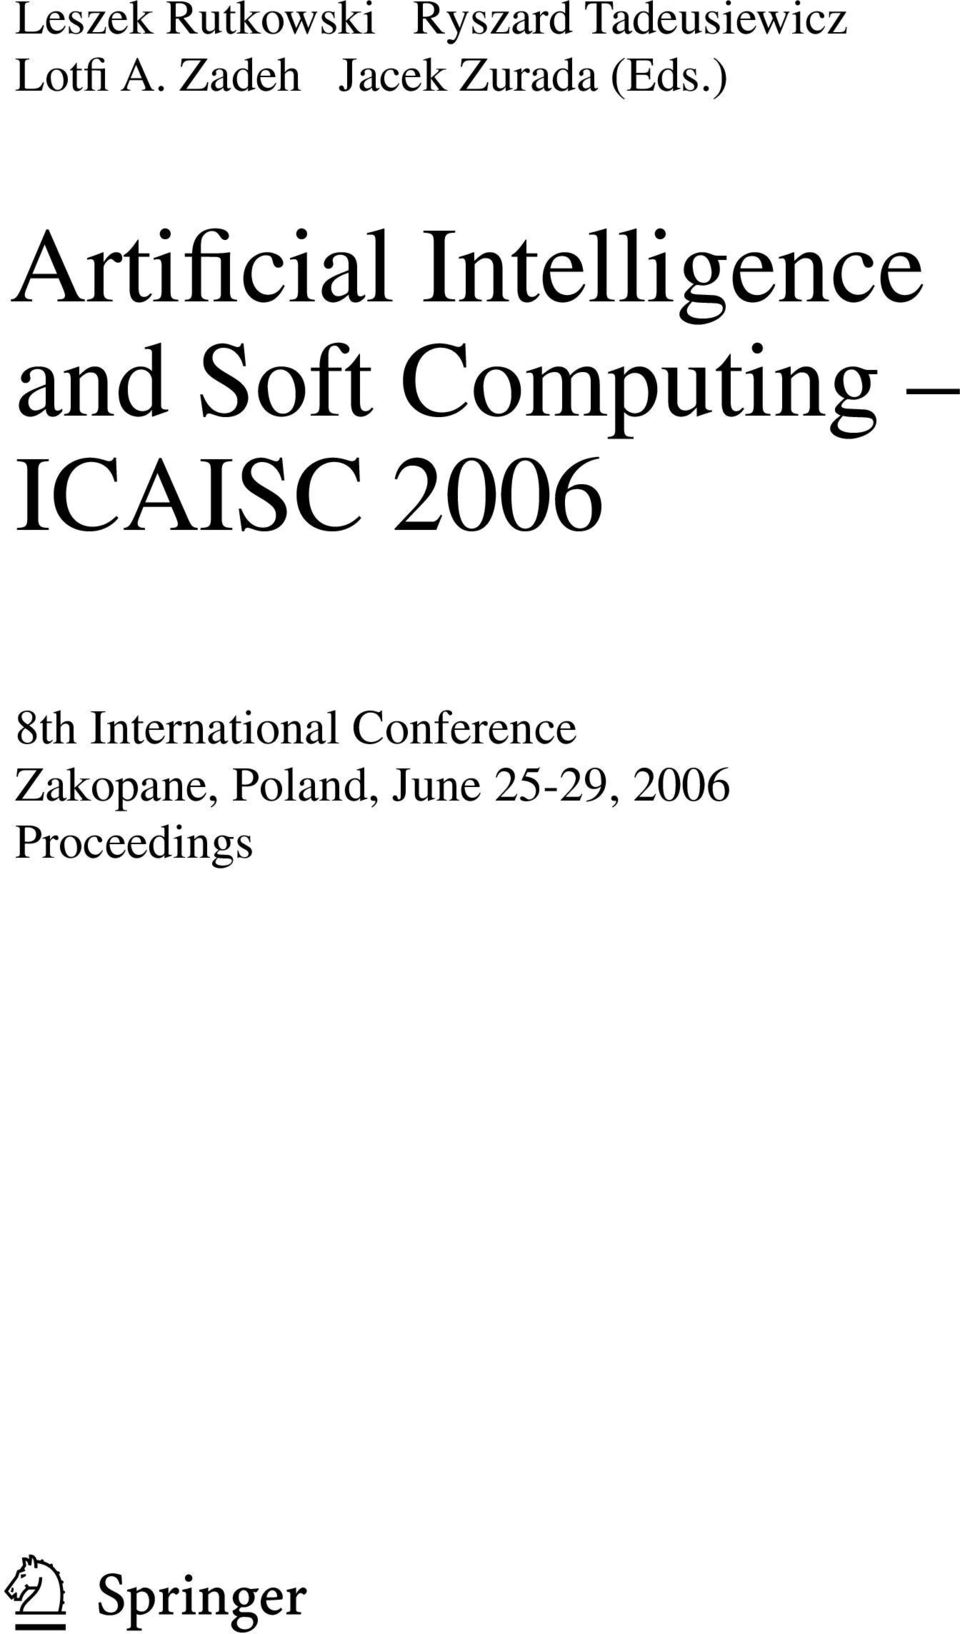 ) Artificial Intelligence and Soft Computing ICAISC